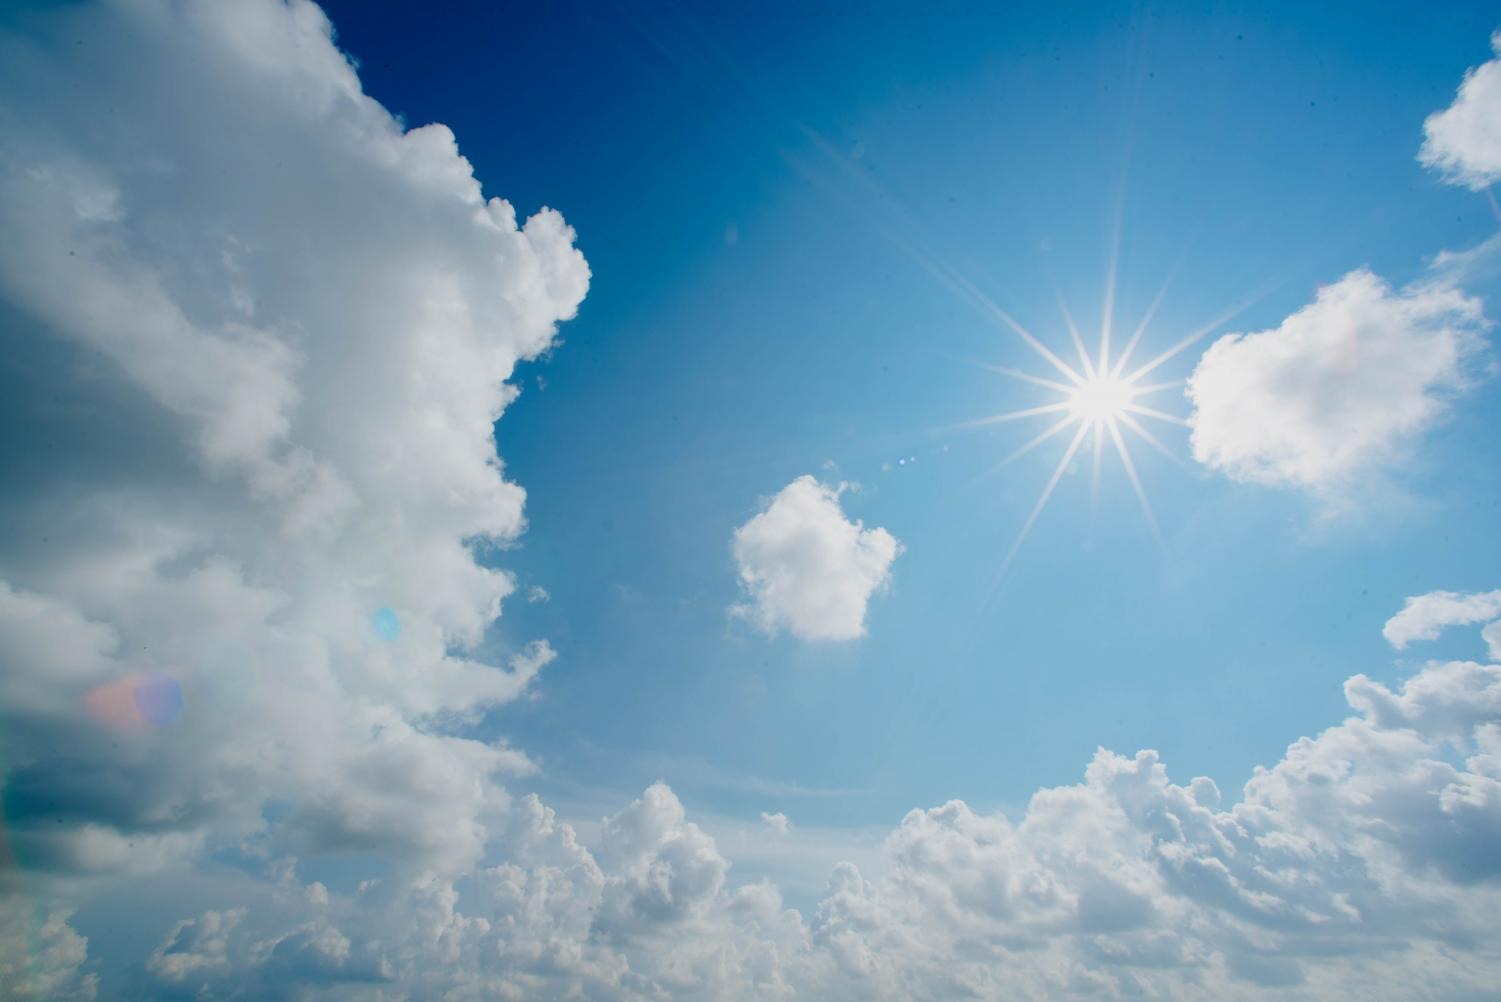 Sunlight and Its Connection to Mood